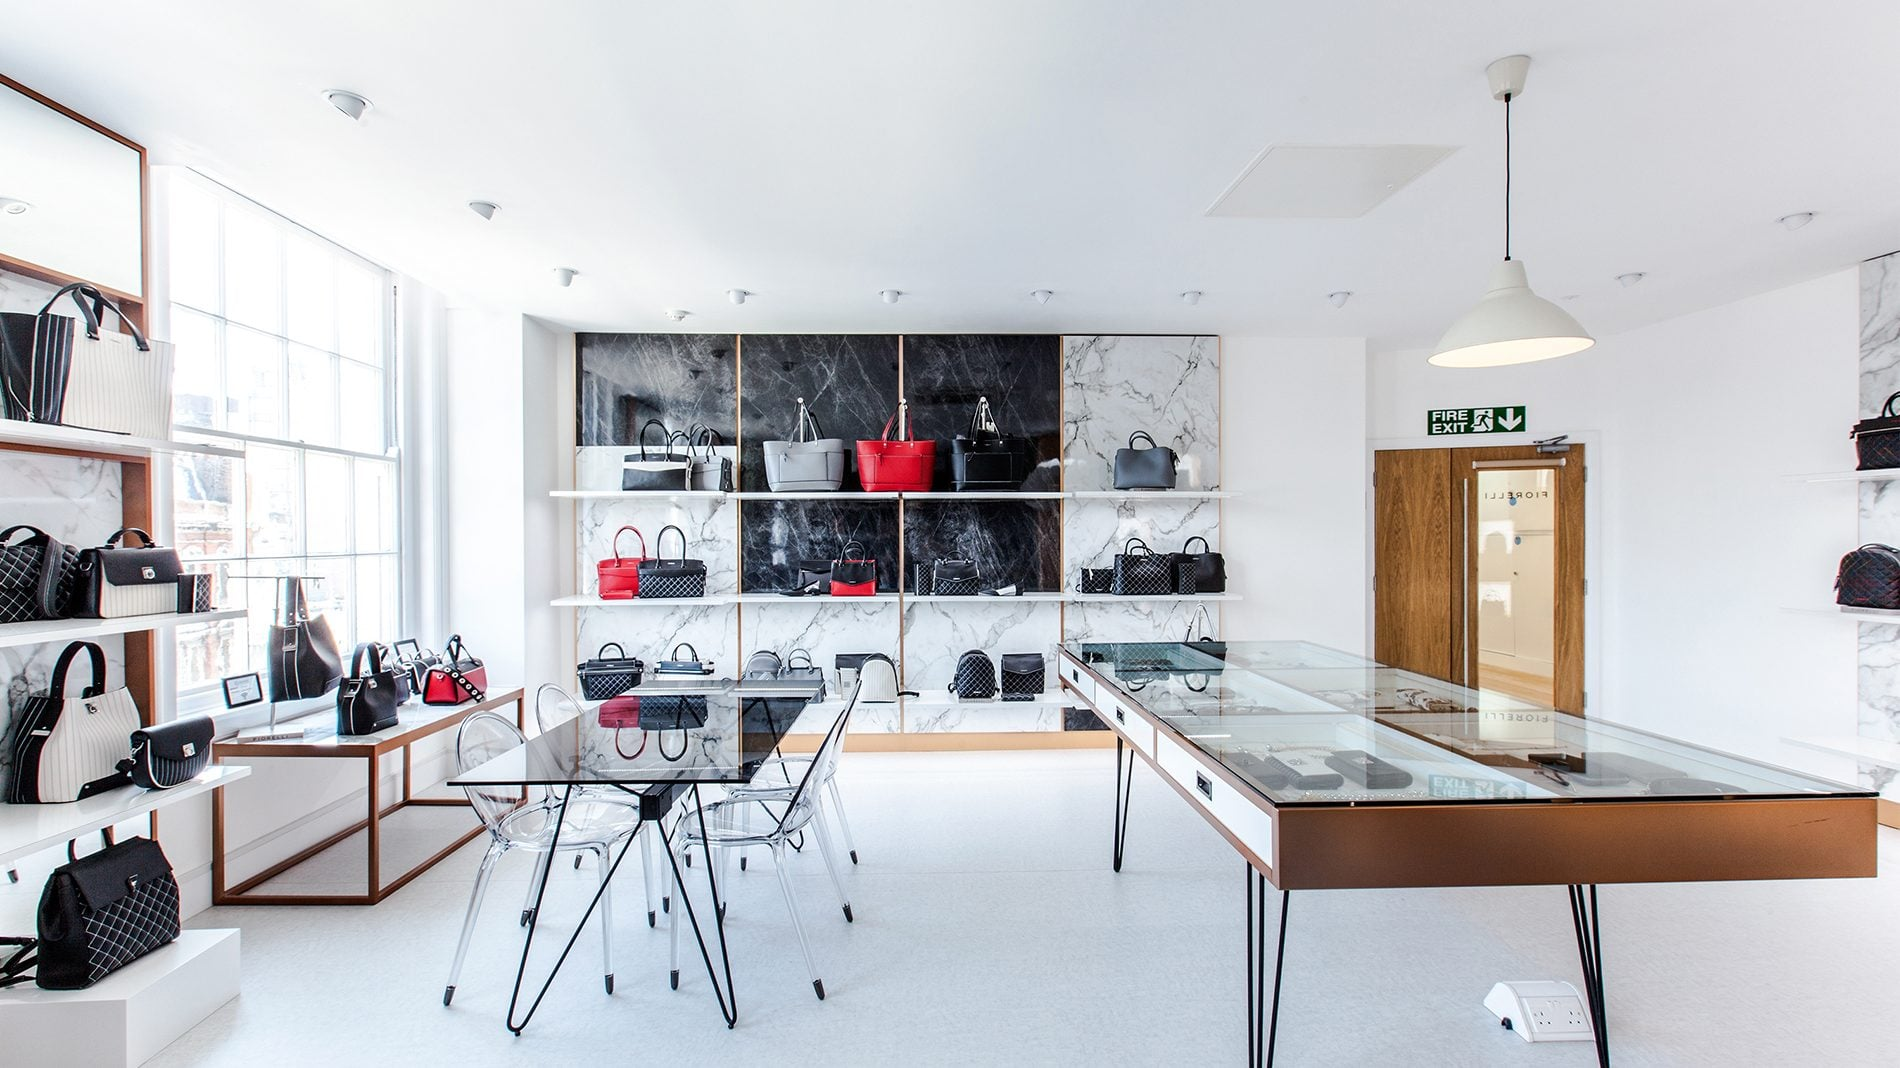 Fiorelli show room with shelves of handbags and a display table